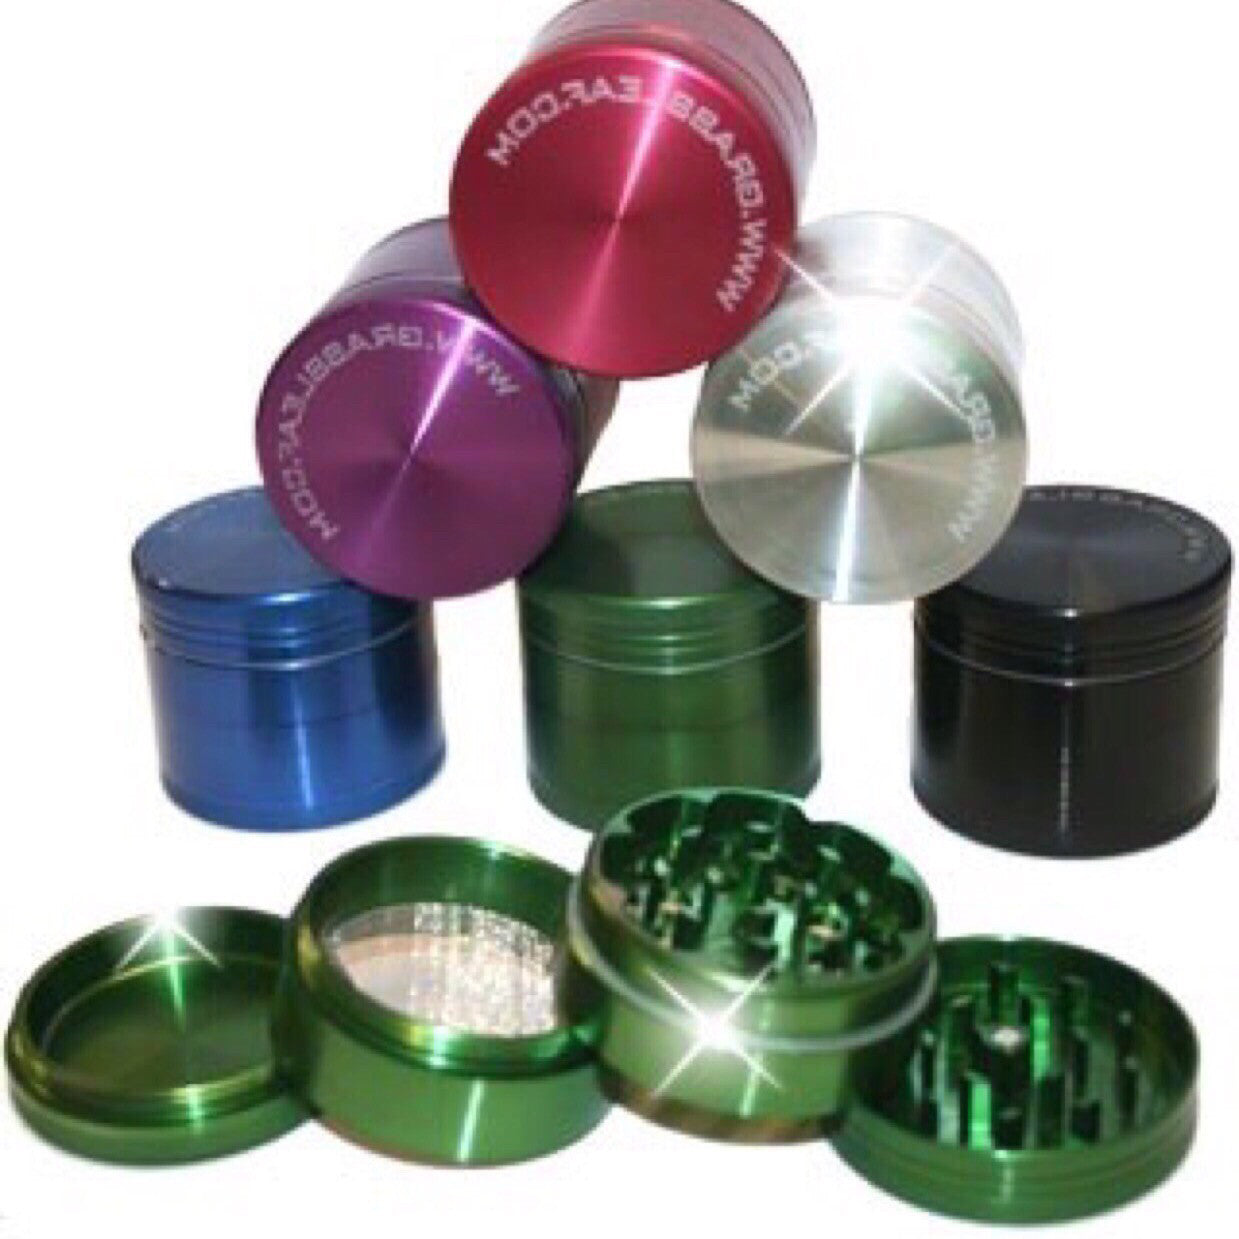 4 PART GRINDER 90MM GREEN